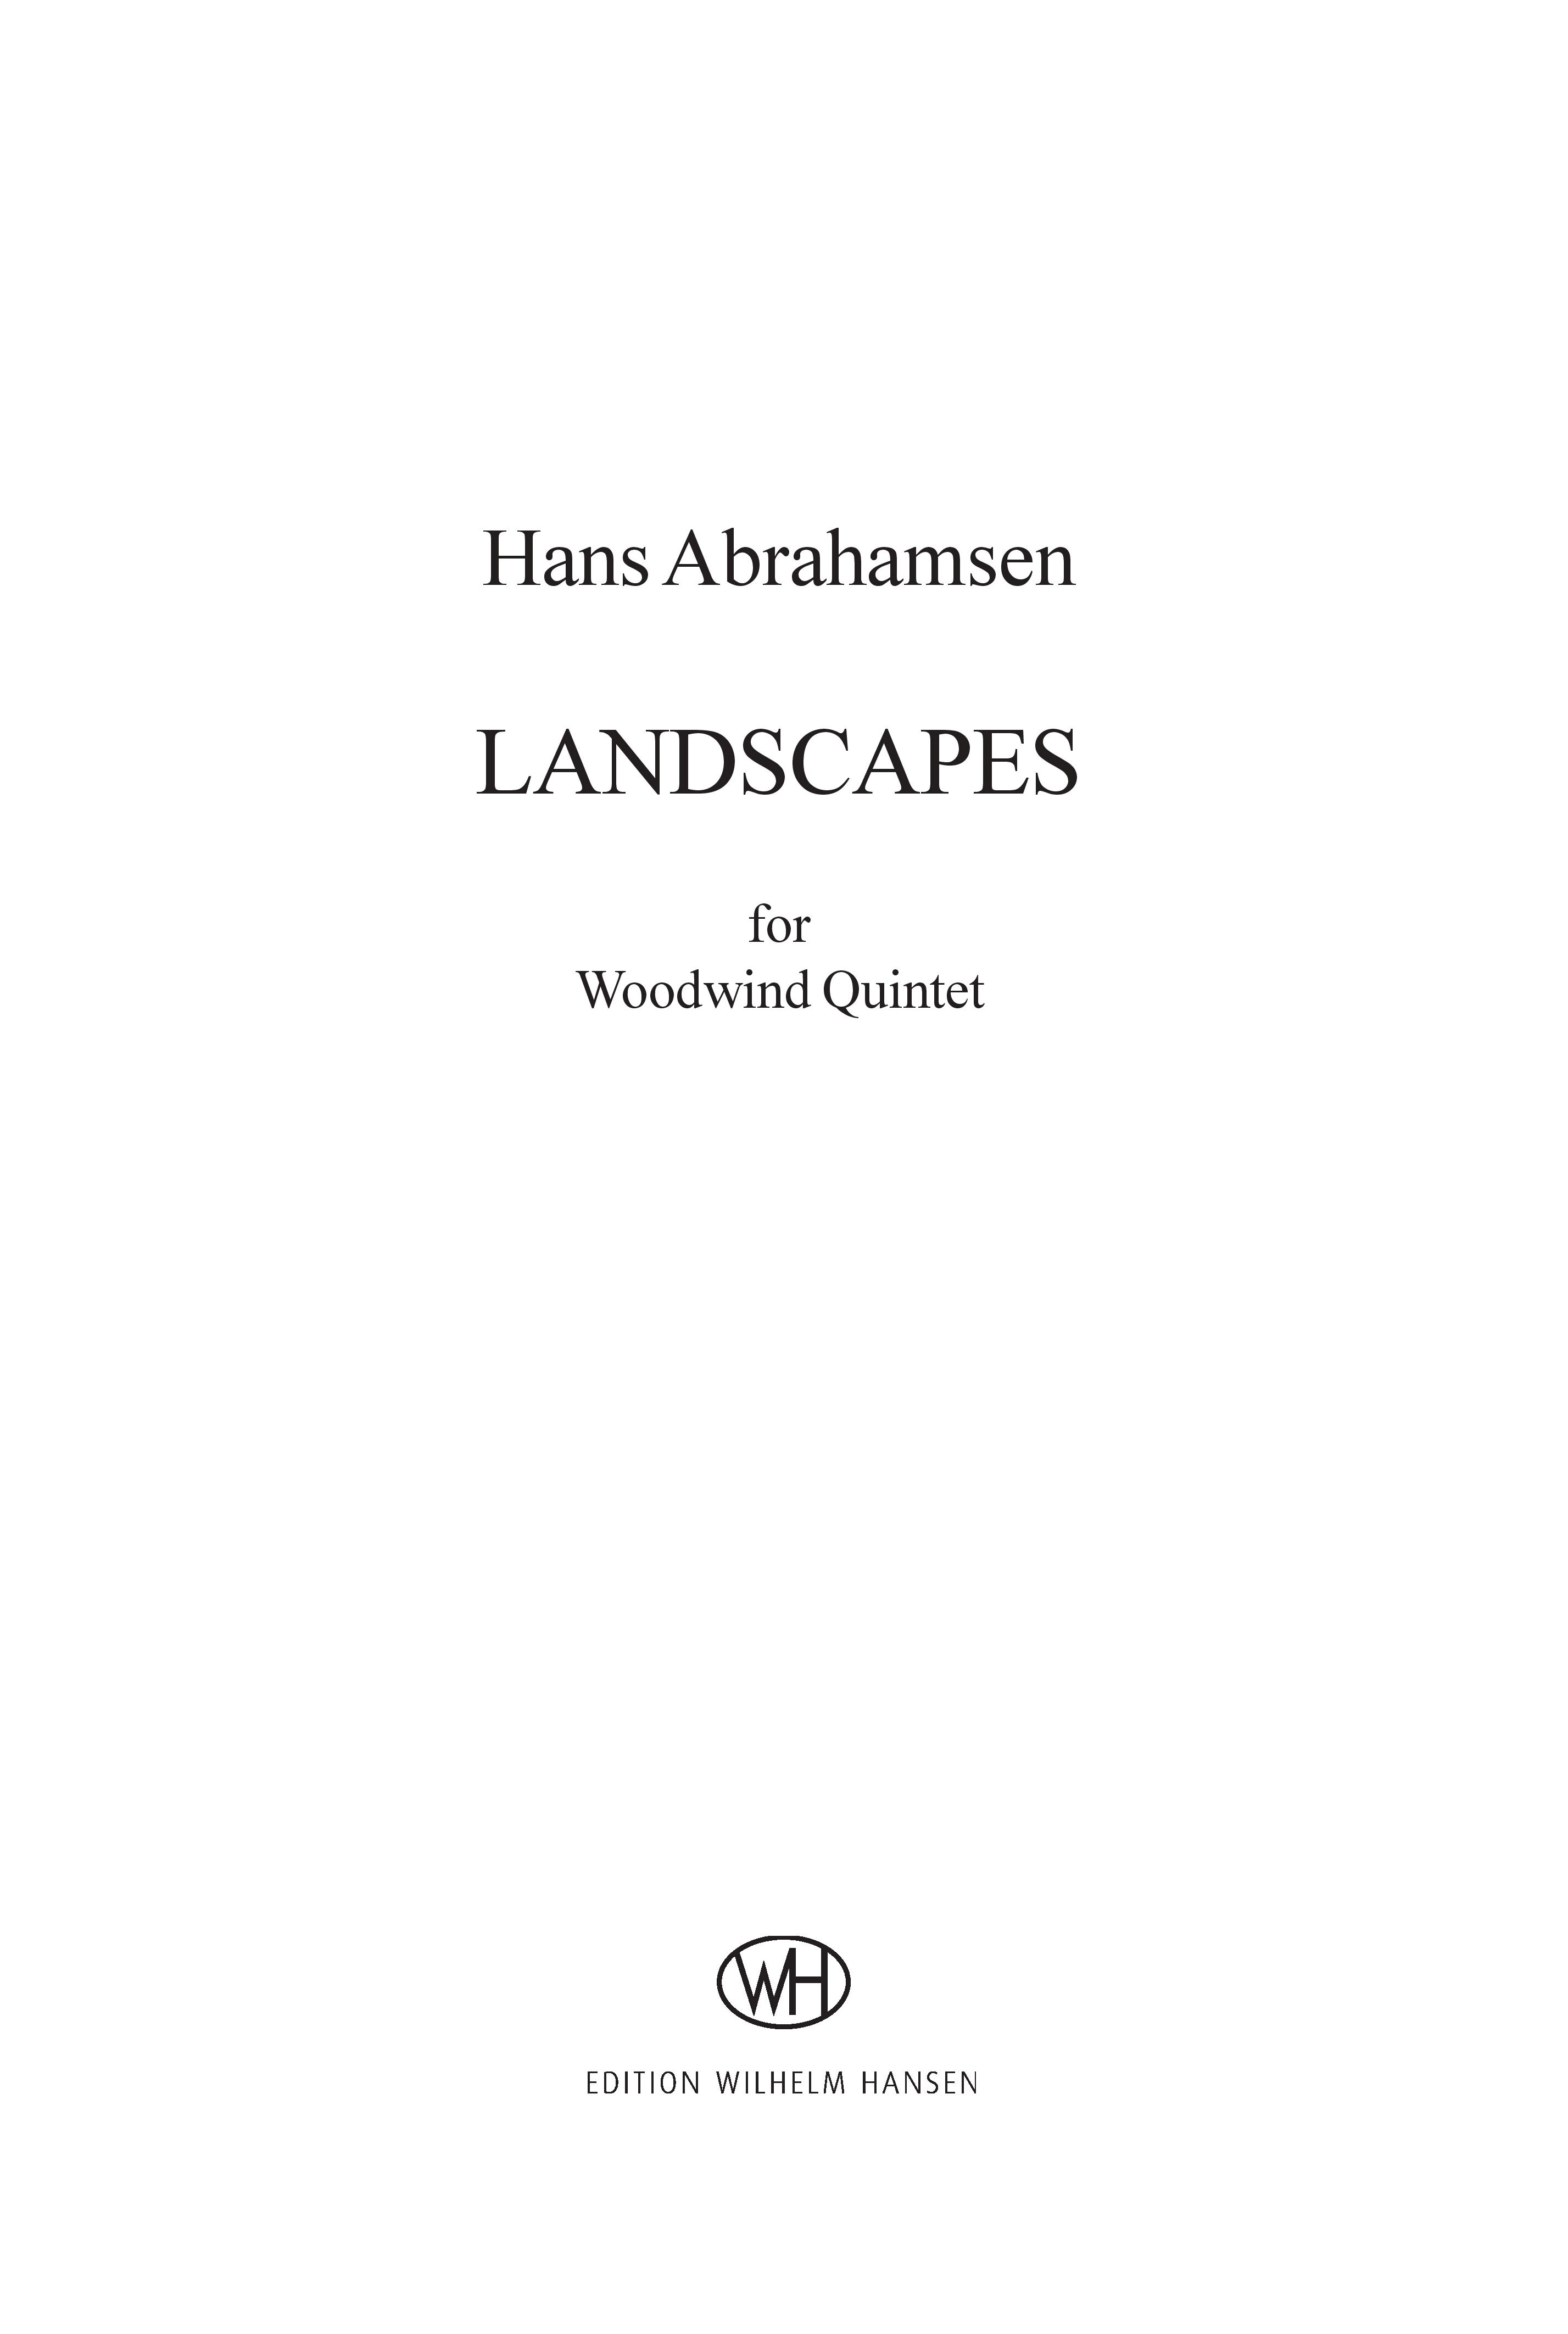 Hans Abrahamsen: Landscapes - Woodwind Quintet No.1: Wind Ensemble: Parts